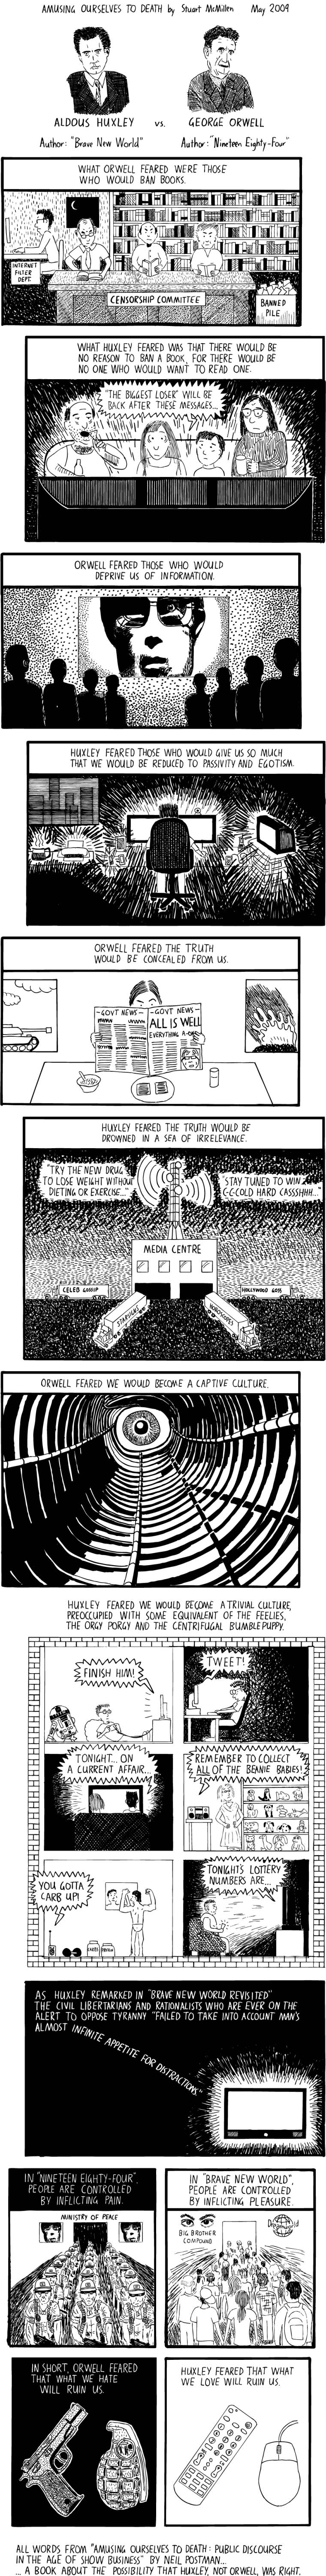 huxley vs orwell the webcomic biblioklept stuart mcmillen s webcomic adapts and updates postman s famous book length essay amusing ourselves to death